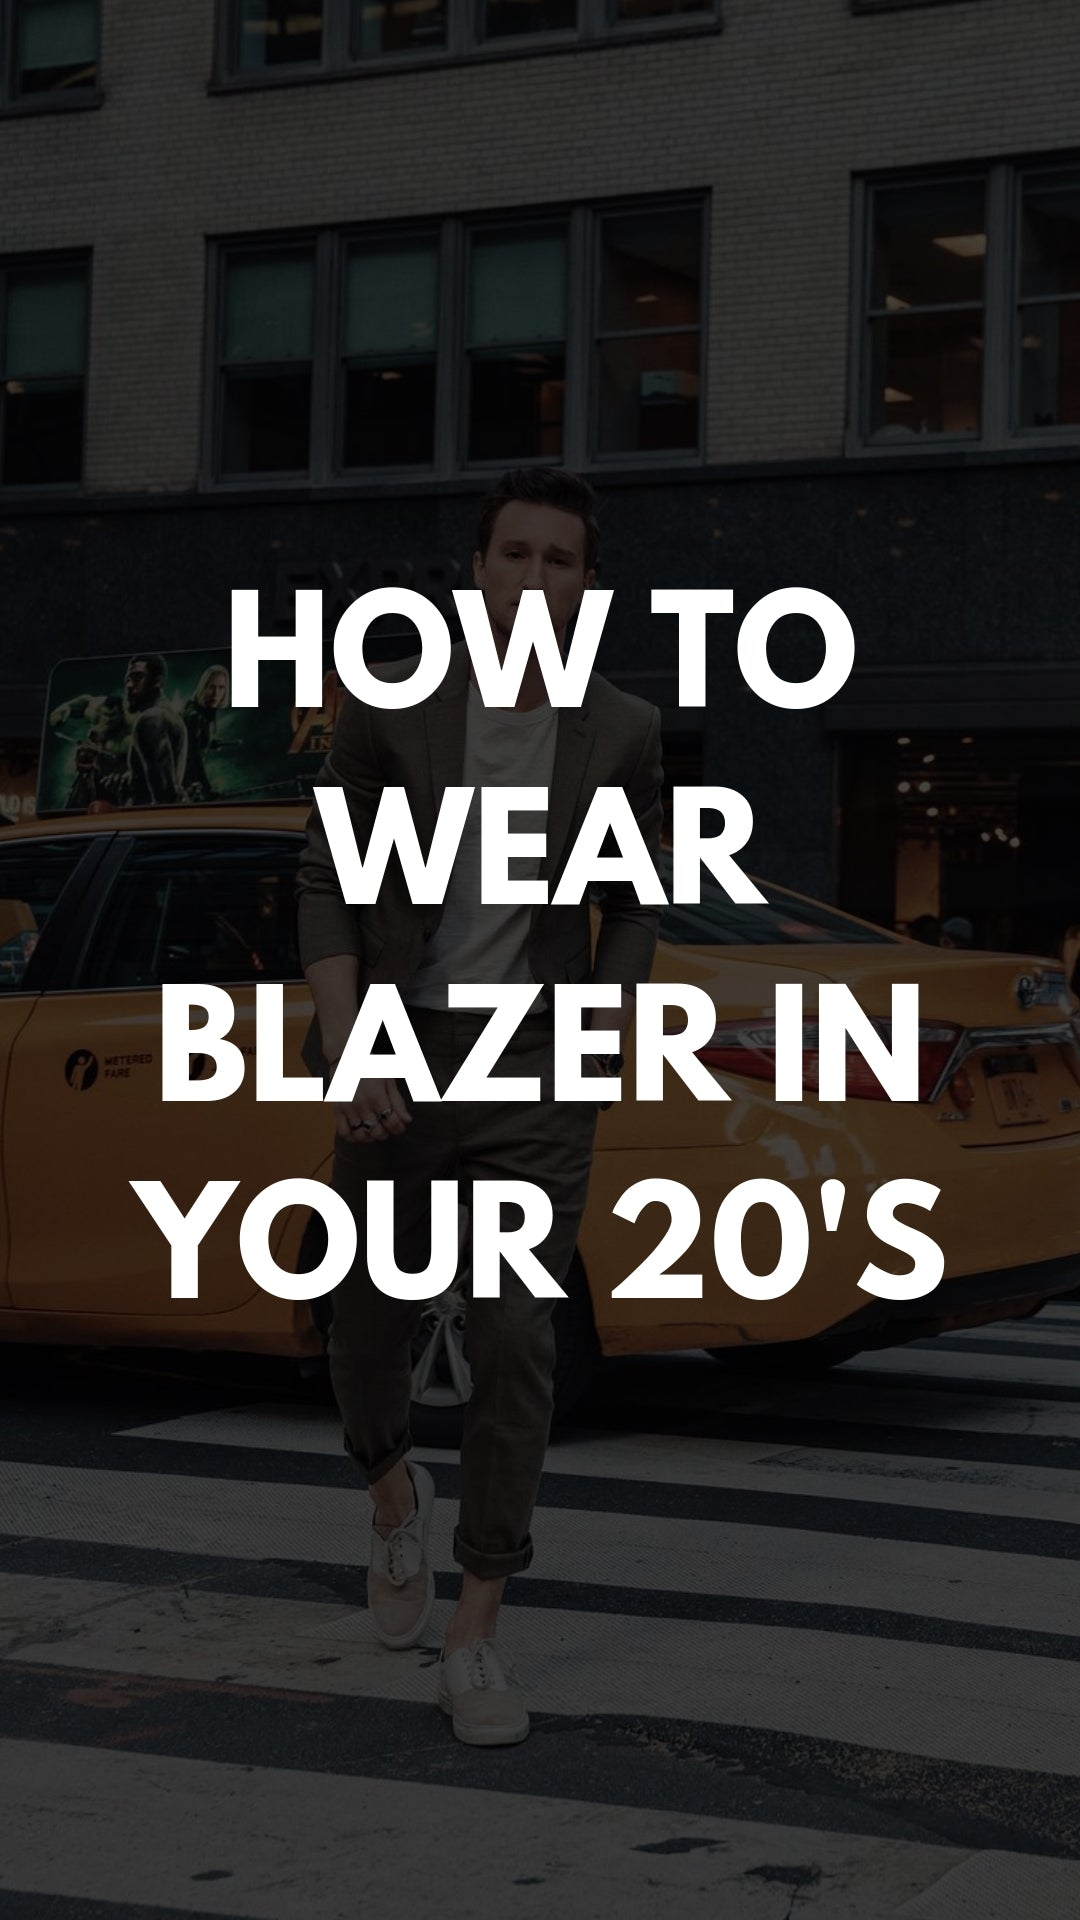 Blazer & t-shirt outfits for guys. #blazertshirt #outfits #mensfashion #streetstyle #smartcasual #outfitideas